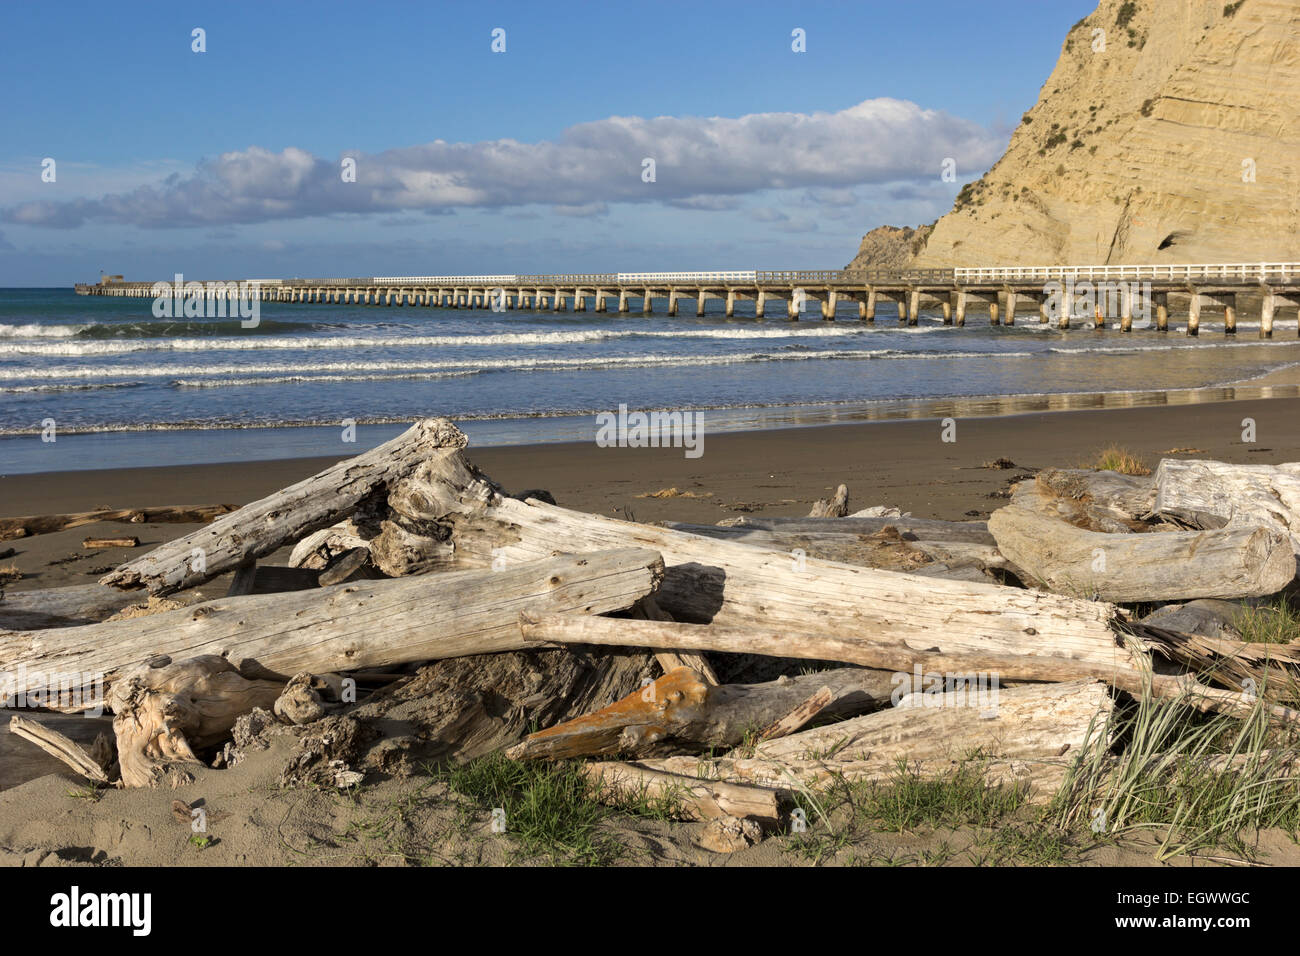 Historic pier in Tolaga Bay in New Zealand - Stock Image